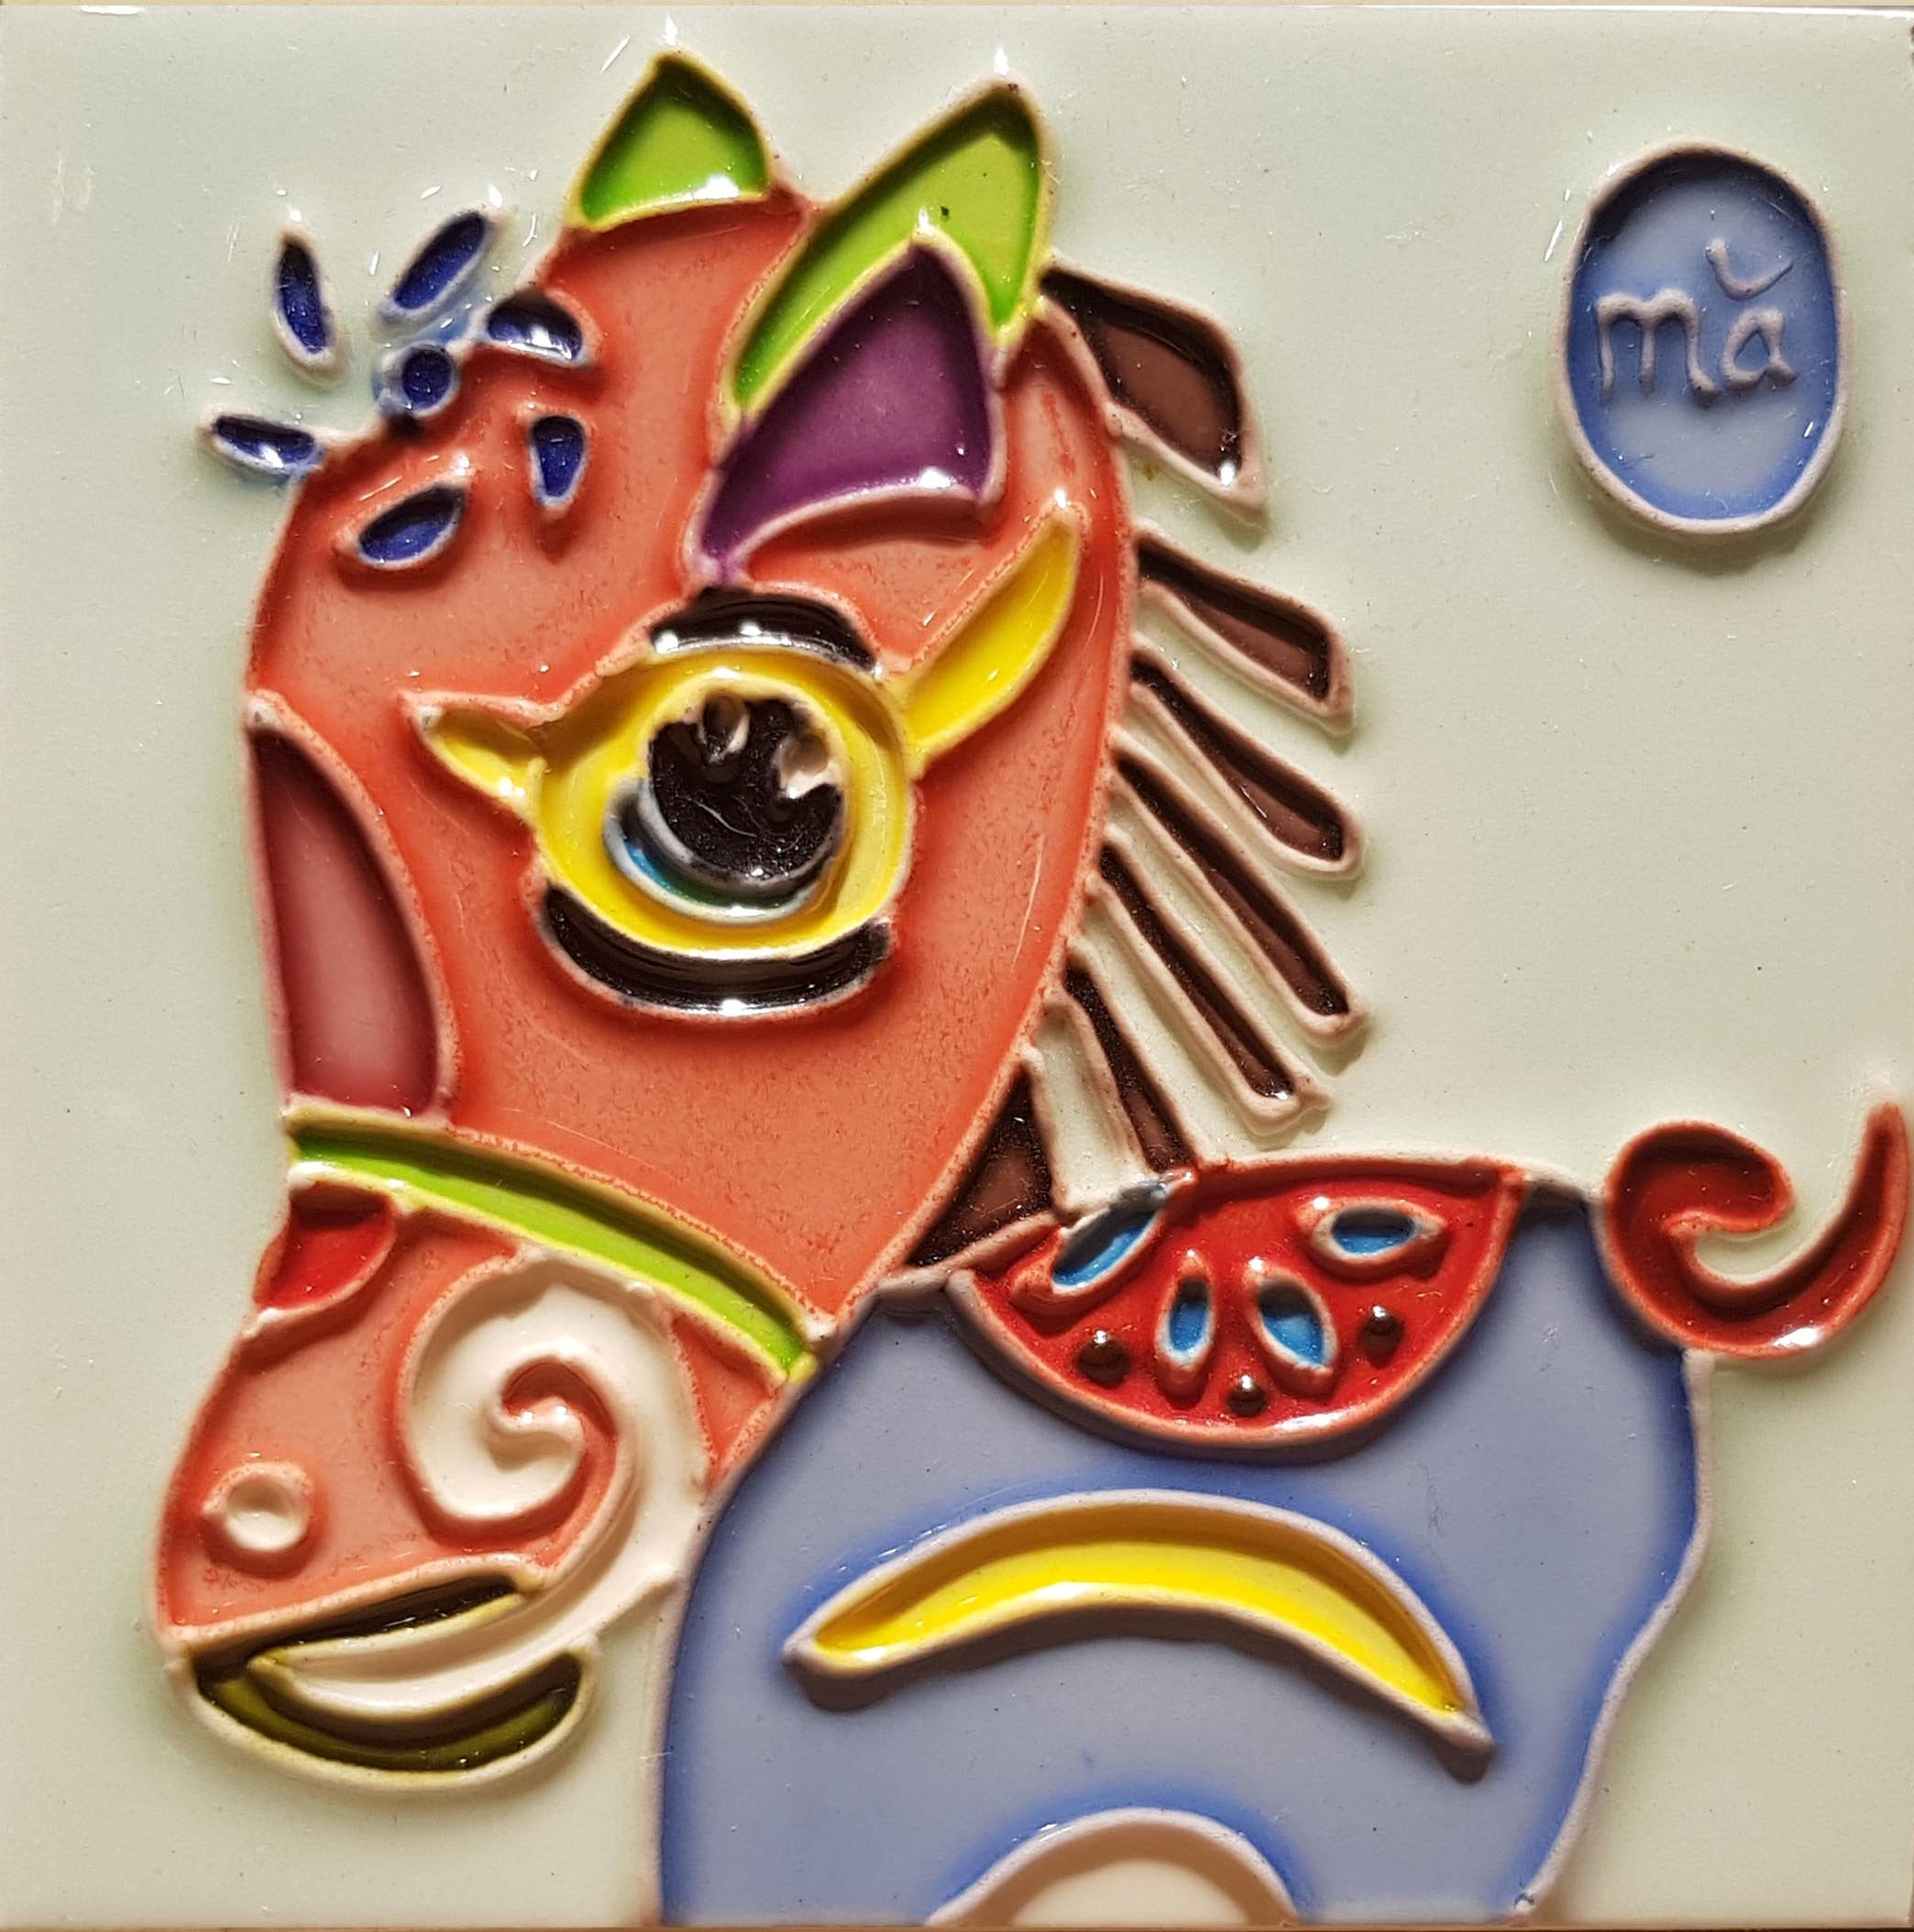 1187 Horoscope Horse 10cm x 10cm Ceramic Tile